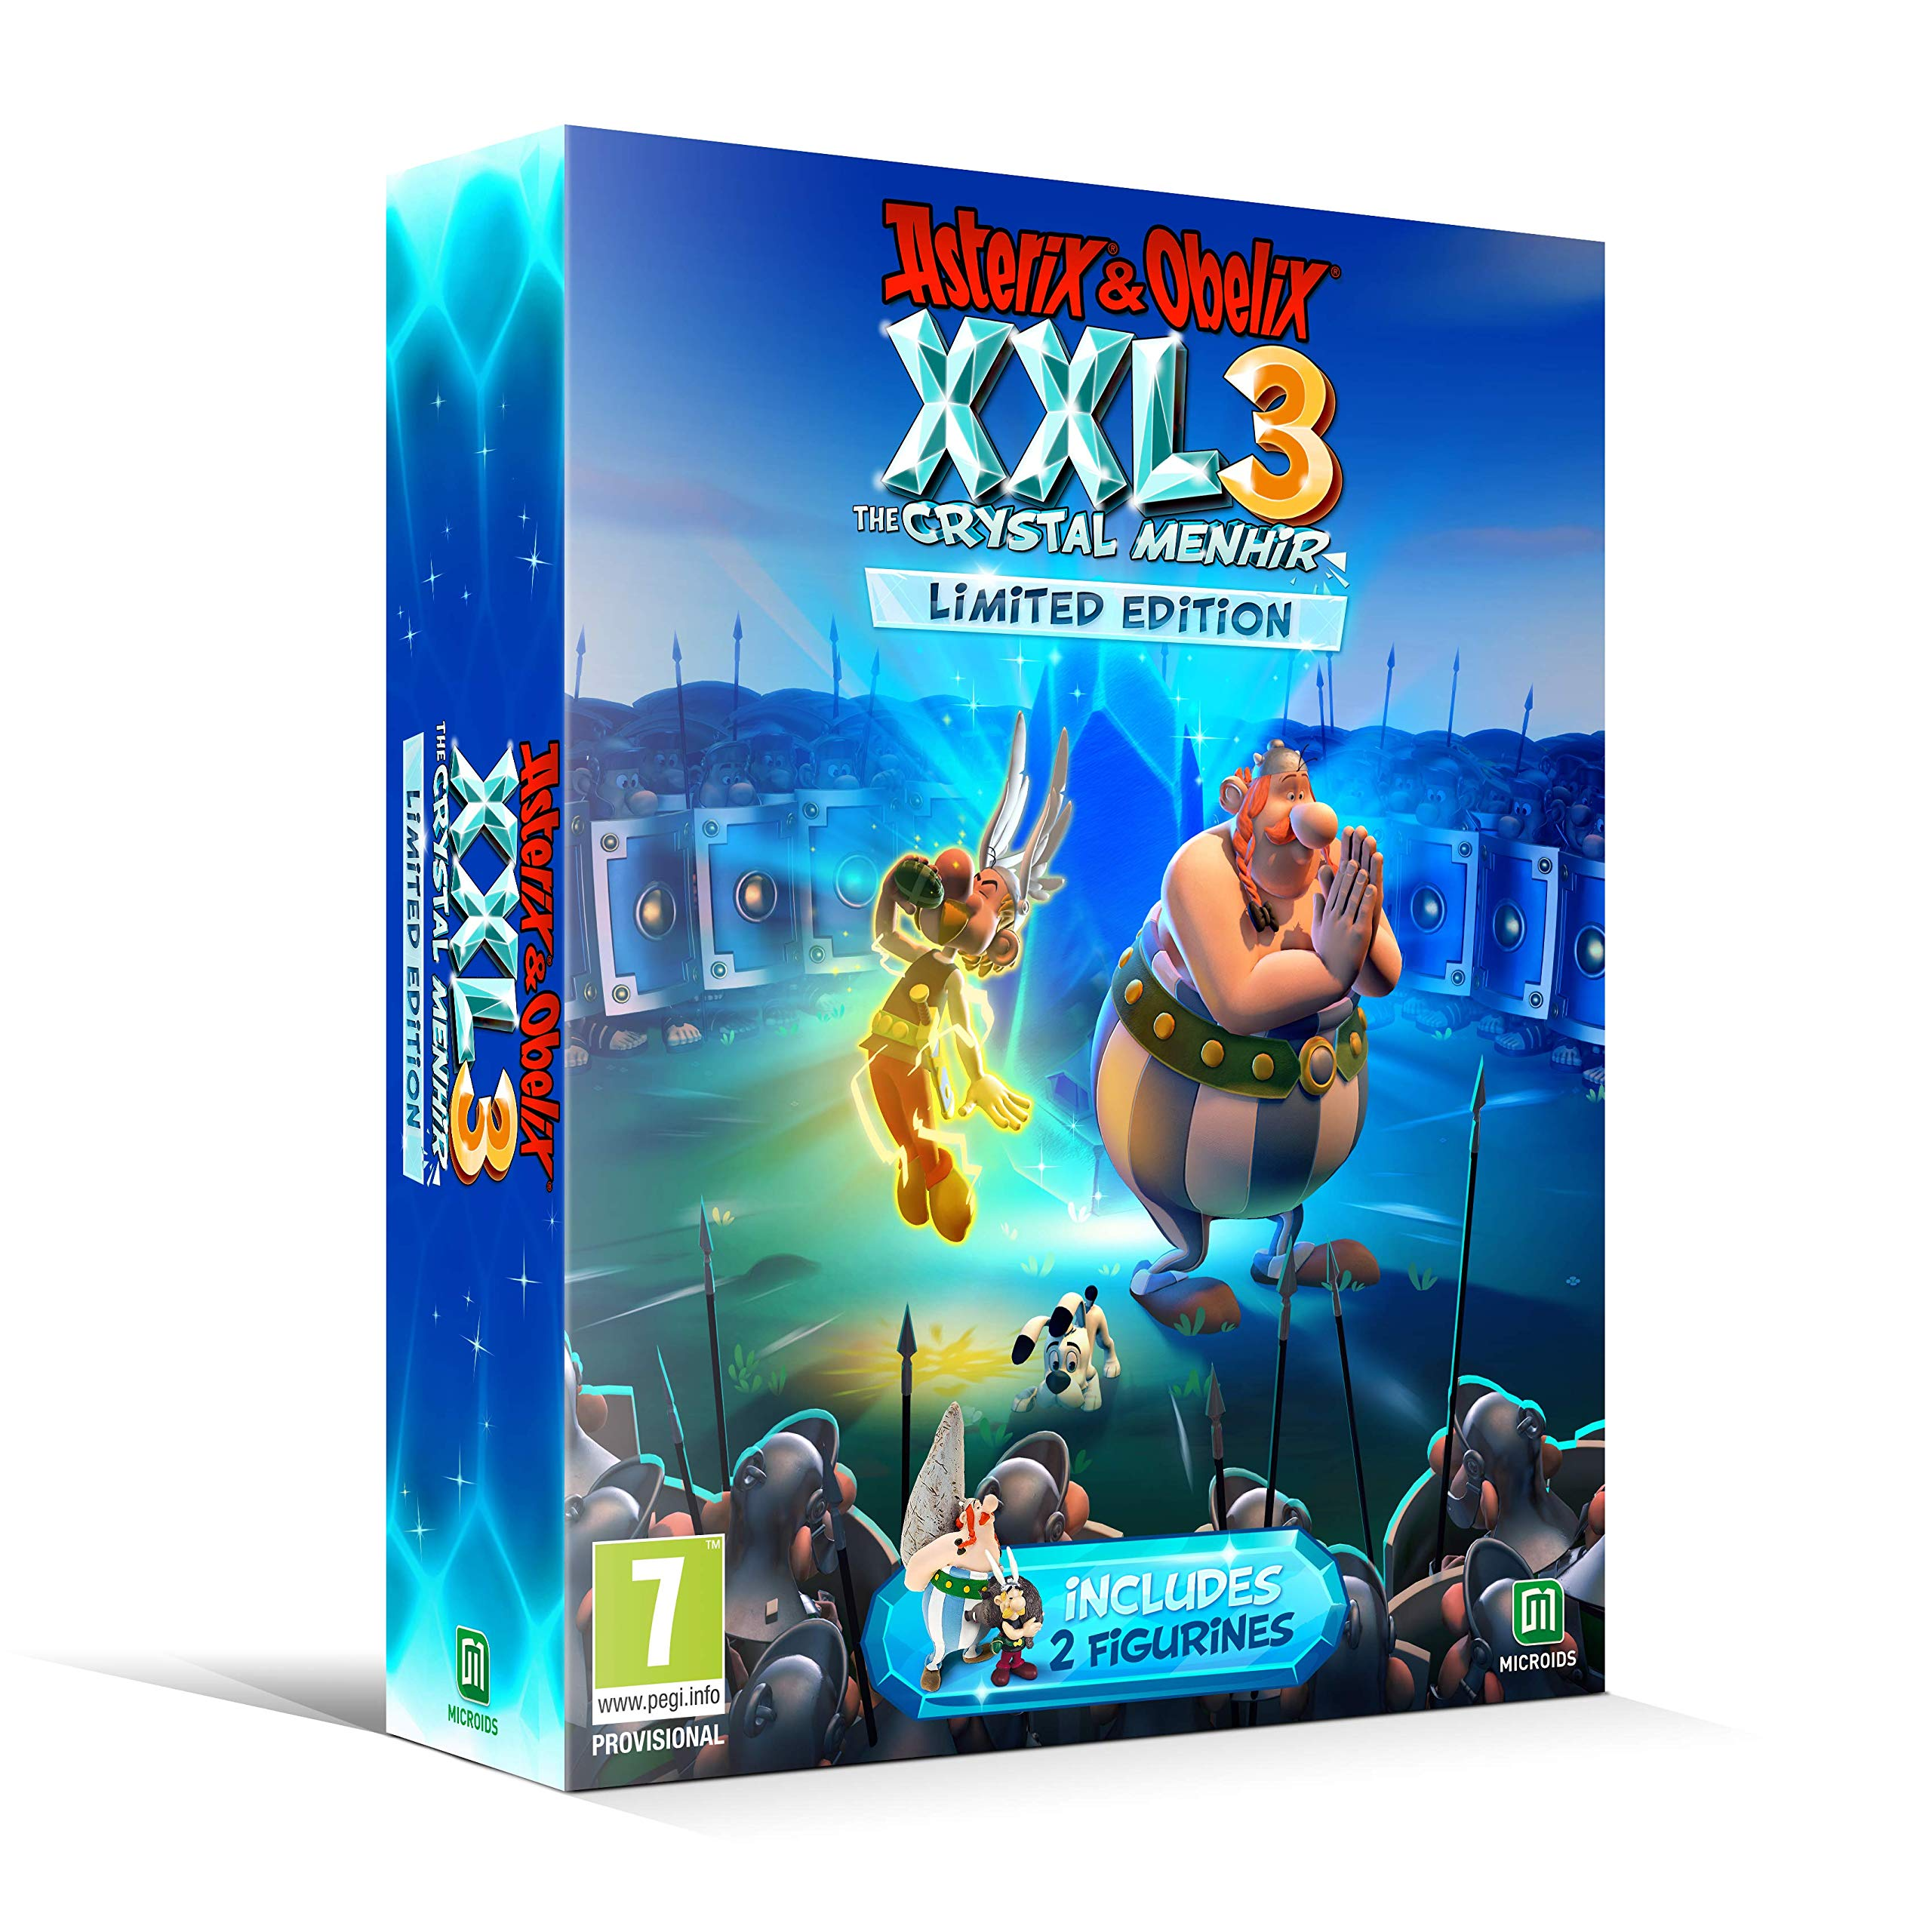 Asterix & Obelix XXL 3 The Crystal Menhir Limited Edition